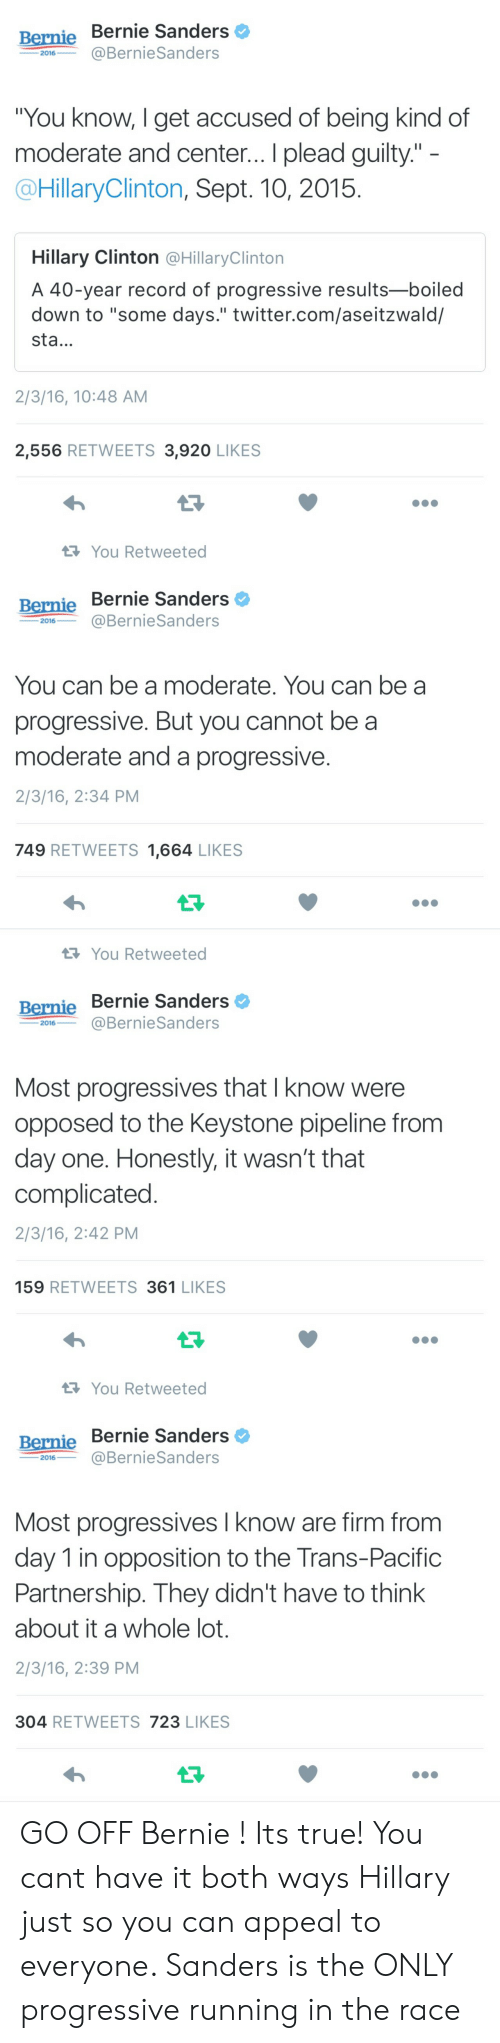 """Running In The: Bernie Bernie Sanders  2016BernieSanders  You know, I get accused of being kind of  moderate and center... I plead guilty.""""  @HillaryClinton, Sept. 10, 2015  Hillary Clinton @HillaryClintorn  A 40-year record of progressive results-boiled  down to """"some days."""" twitter.com/aseitzwald/  sta...  2/3/16, 10:48 AM  2,556 RETWEETS 3,920 LIKES   You Retweeted  Bernie Bernie Sanders  ー2016-一@BernieSanders  You can be a moderate. You can be a  progressive. But you cannot be a  moderate and a progressive.  2/3/16, 2:34 PM  749 RETWEETS 1,664 LIKES   You Retweeted  Bernie Bernie Sanders  ー2016--@BernieSanders  Most progressives that I know were  opposed to the Keystone pipeline from  day one. Honestly, it wasn't that  complicated  2/3/16, 2:42 PM  159 RETWEETS 361 LIKES   You Retweeted  Bernie Bernie Sanders  2016@BernieSanders  Most progressives I know are firm from  day 1 in opposition to the Trans-Pacific  Partnership. They didn't have to think  about it a whole lot.  2/3/16, 2:39 PM  304 RETWEETS 723 LIKES GO OFF Bernie ! Its true! You cant have it both ways Hillary just so you can appeal to everyone. Sanders is the ONLY progressive running in the race"""